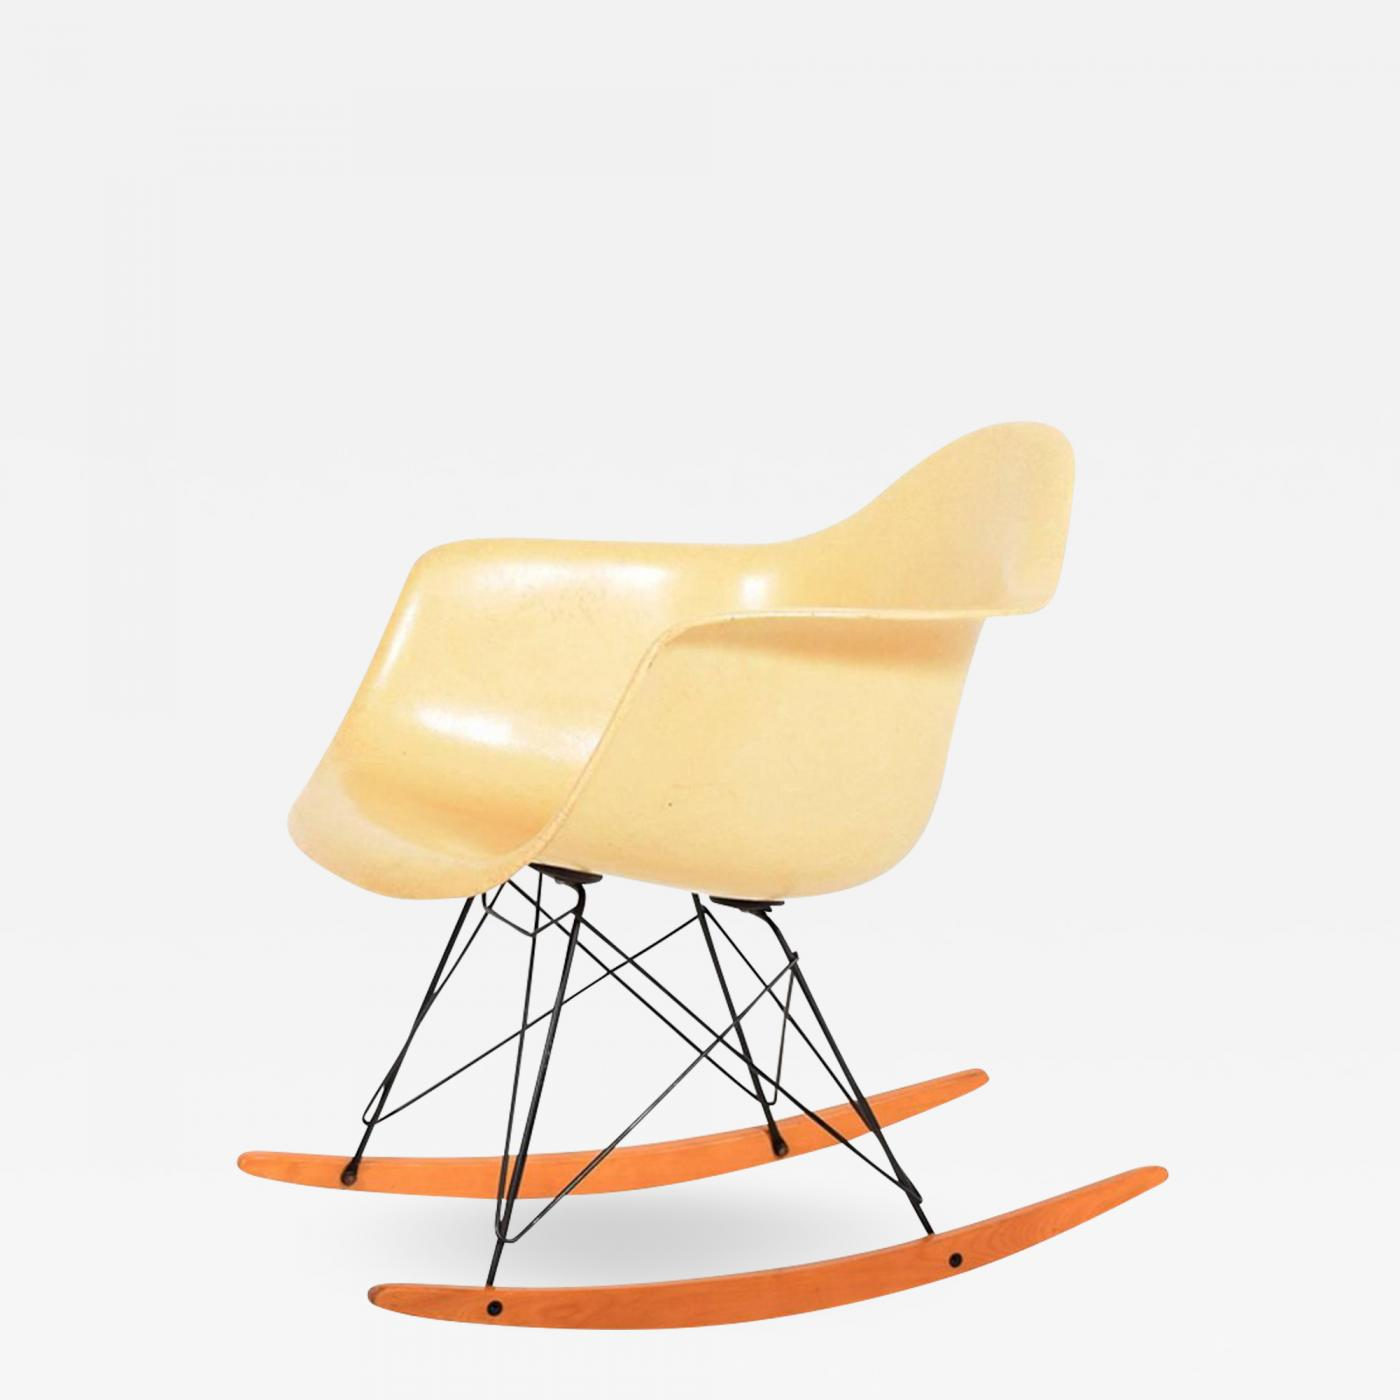 Eames Rar Charles Eames Rar Second Edition Rocking Armchair By Charles Eames For Herman Miller